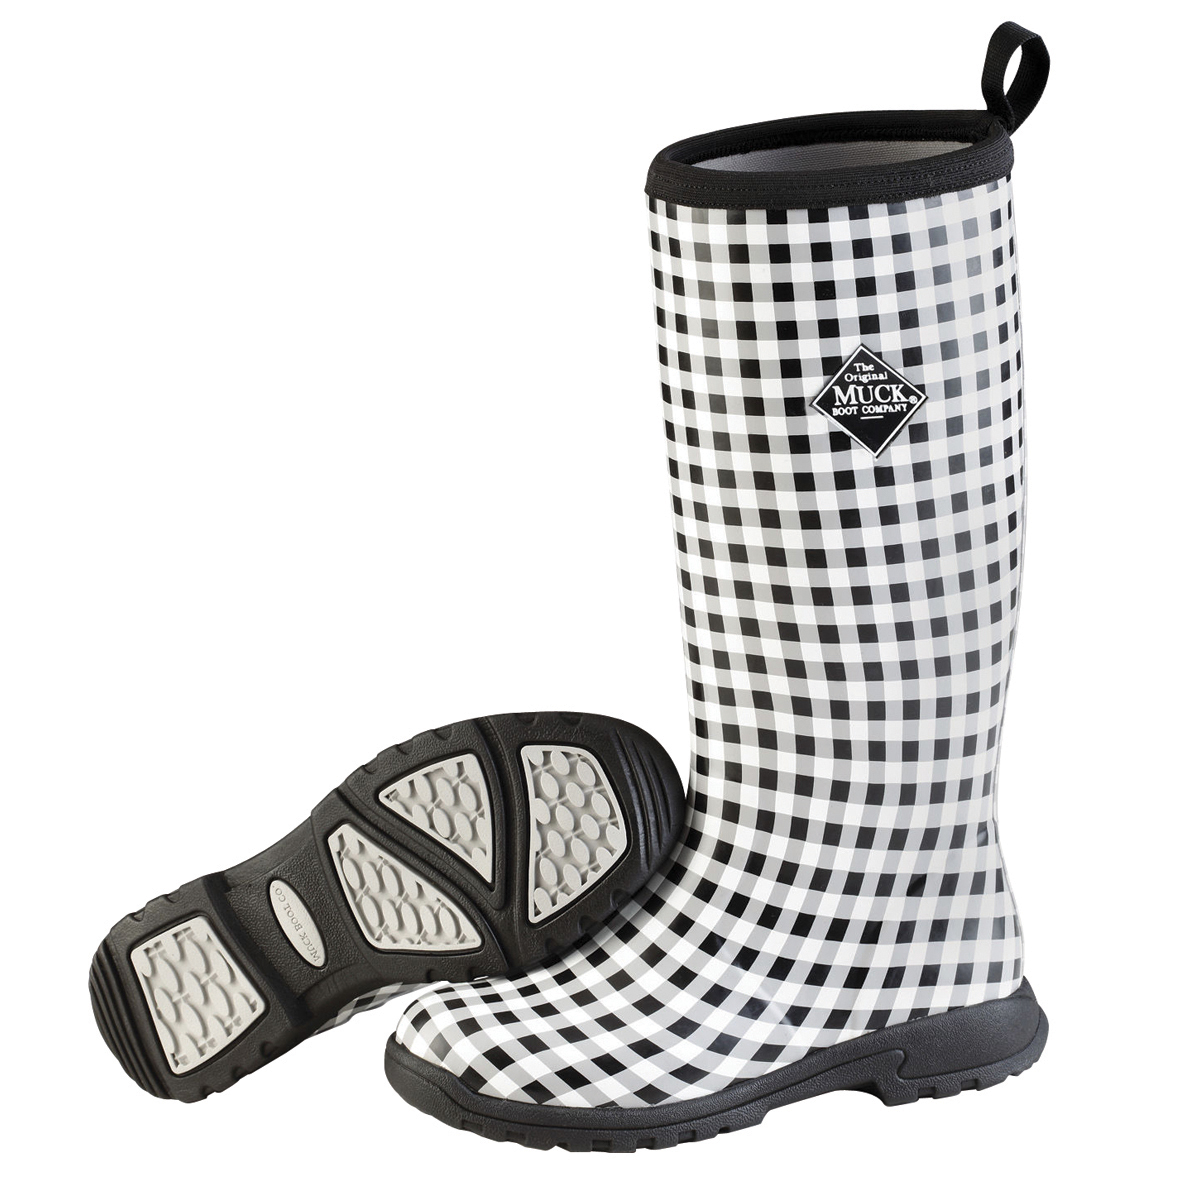 Muck Boots Breezy Tall Insulated Rain Boot for Ladies Women's - black Gingham